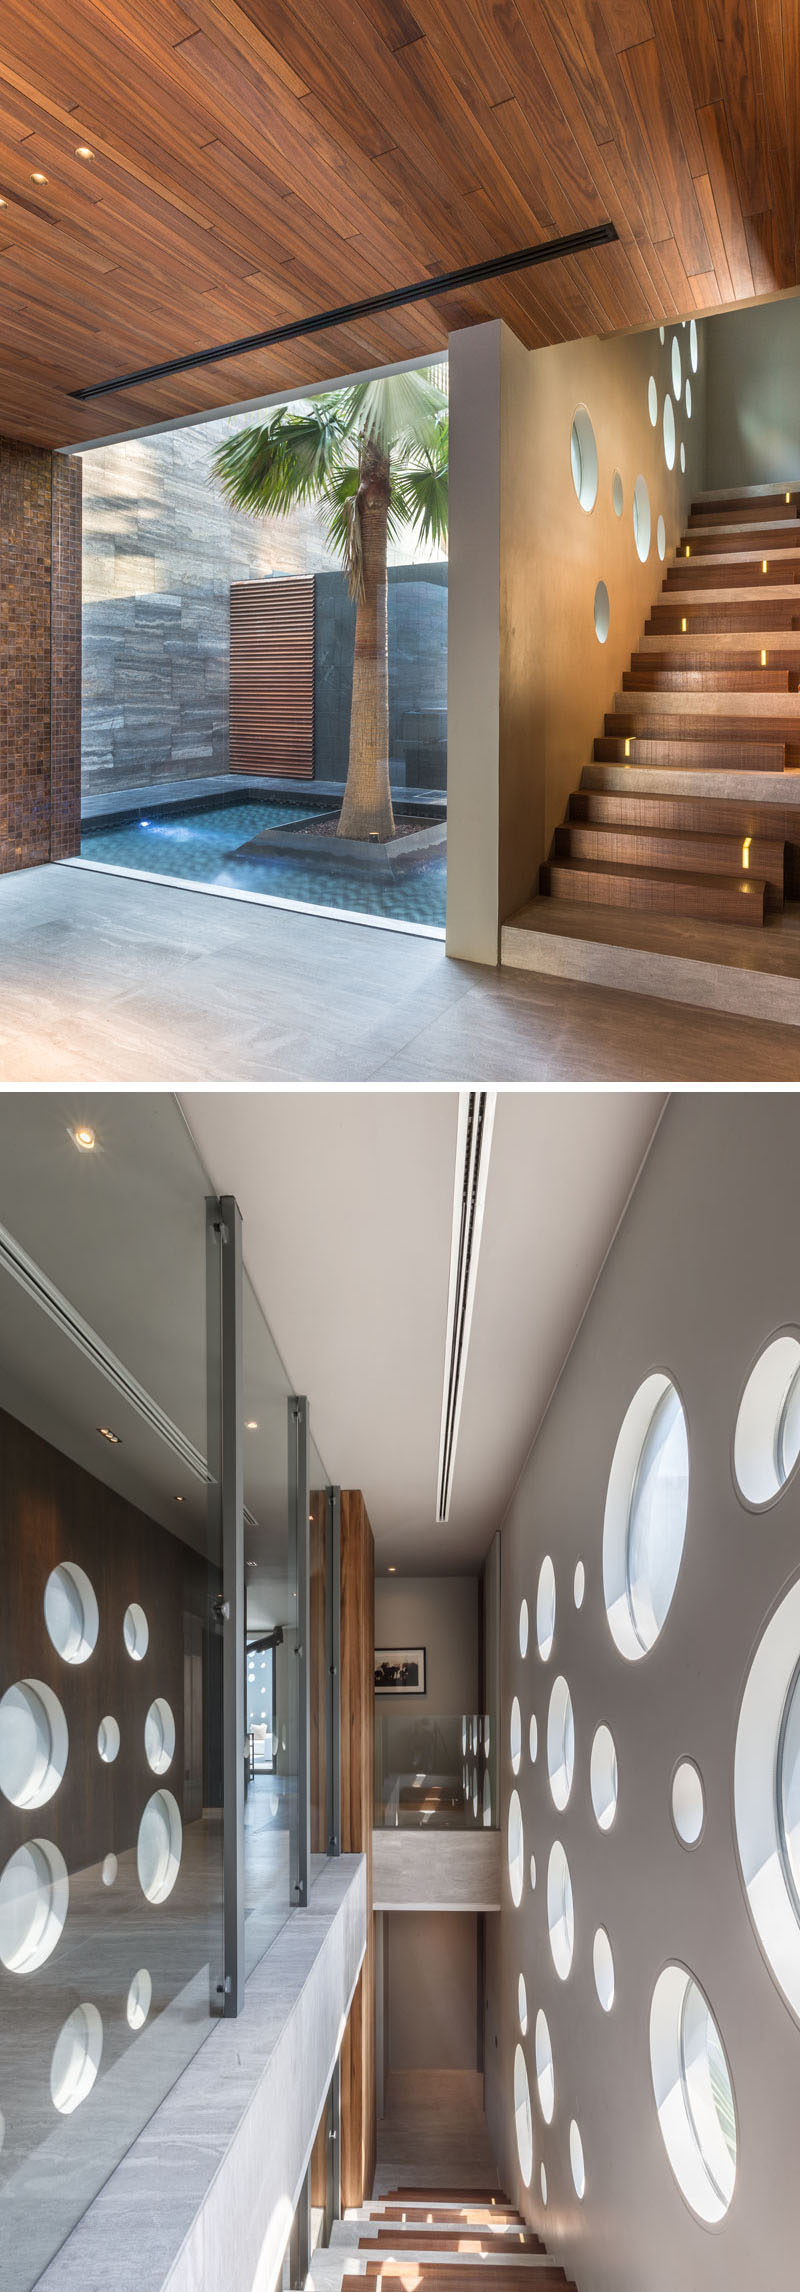 Large circular windows in the wall provide natural sunlight to the staircase.